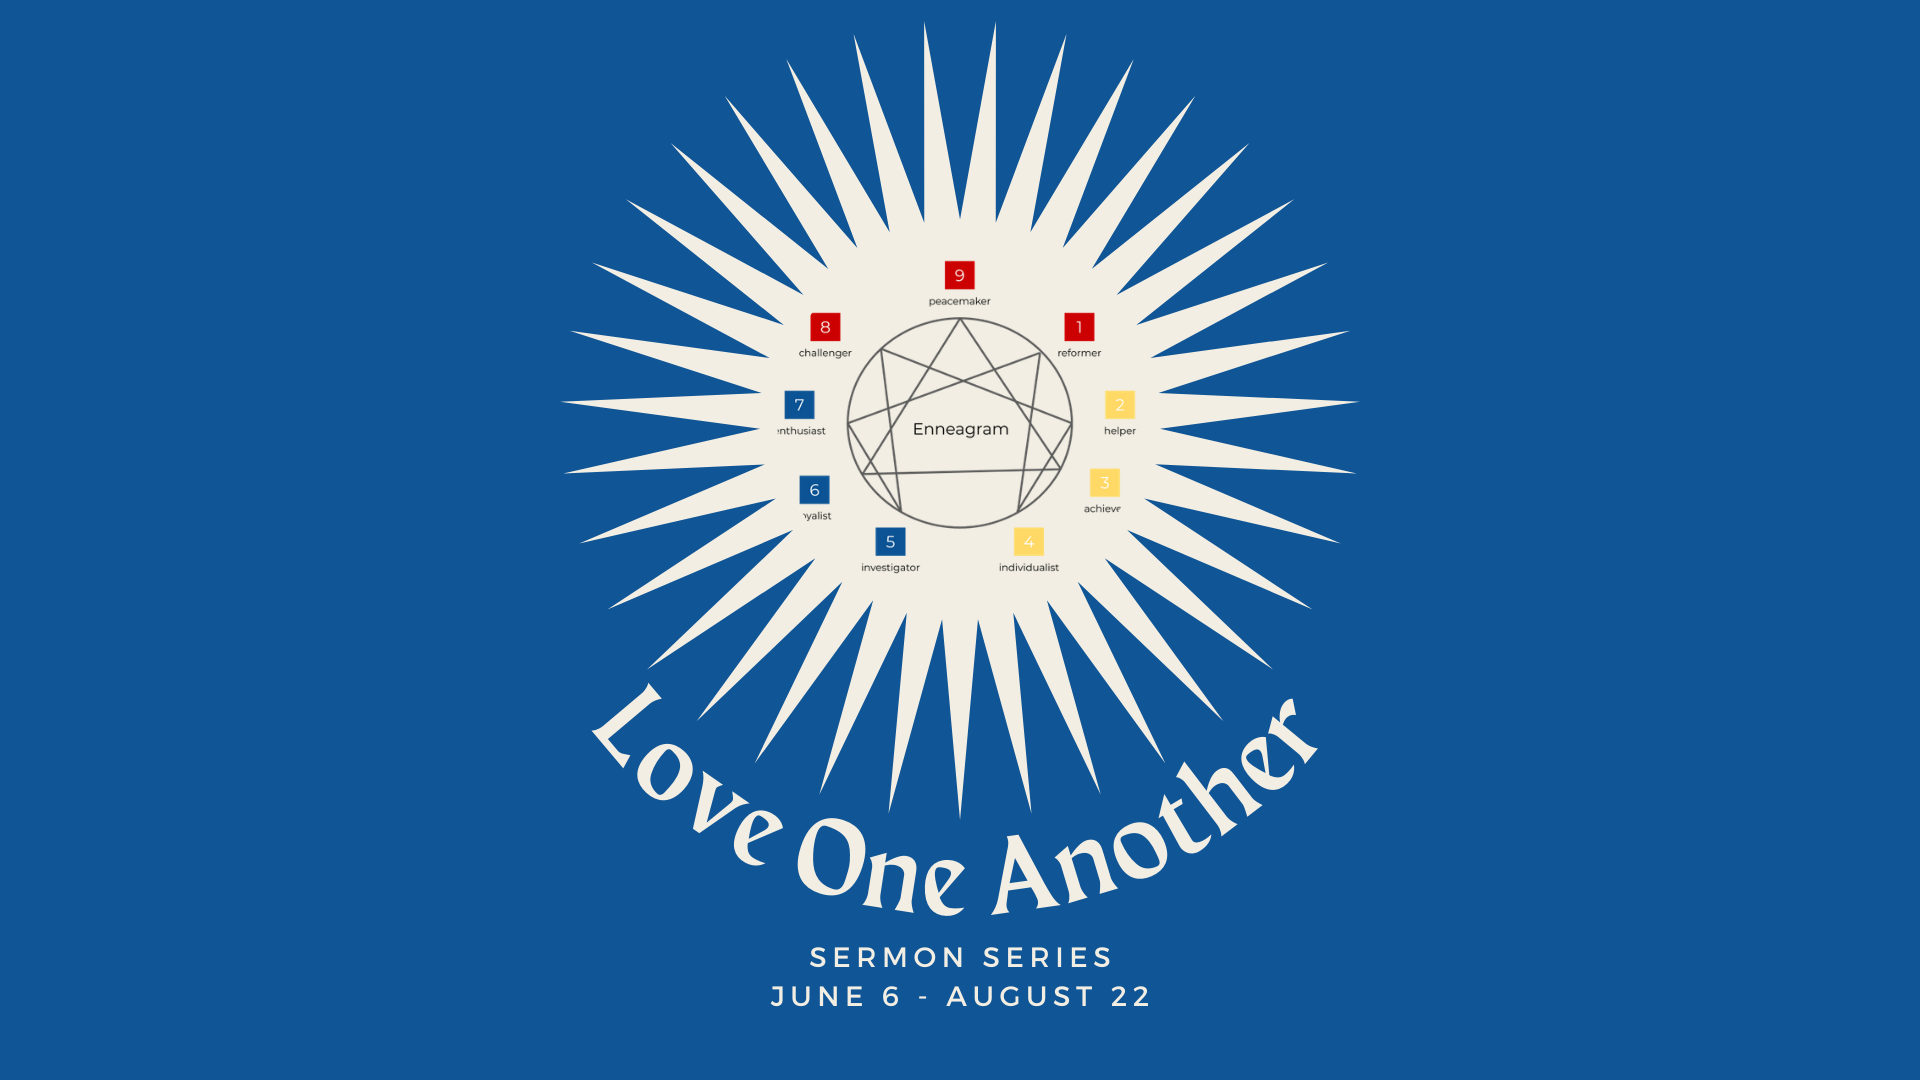 Love One Another - Presentation.png